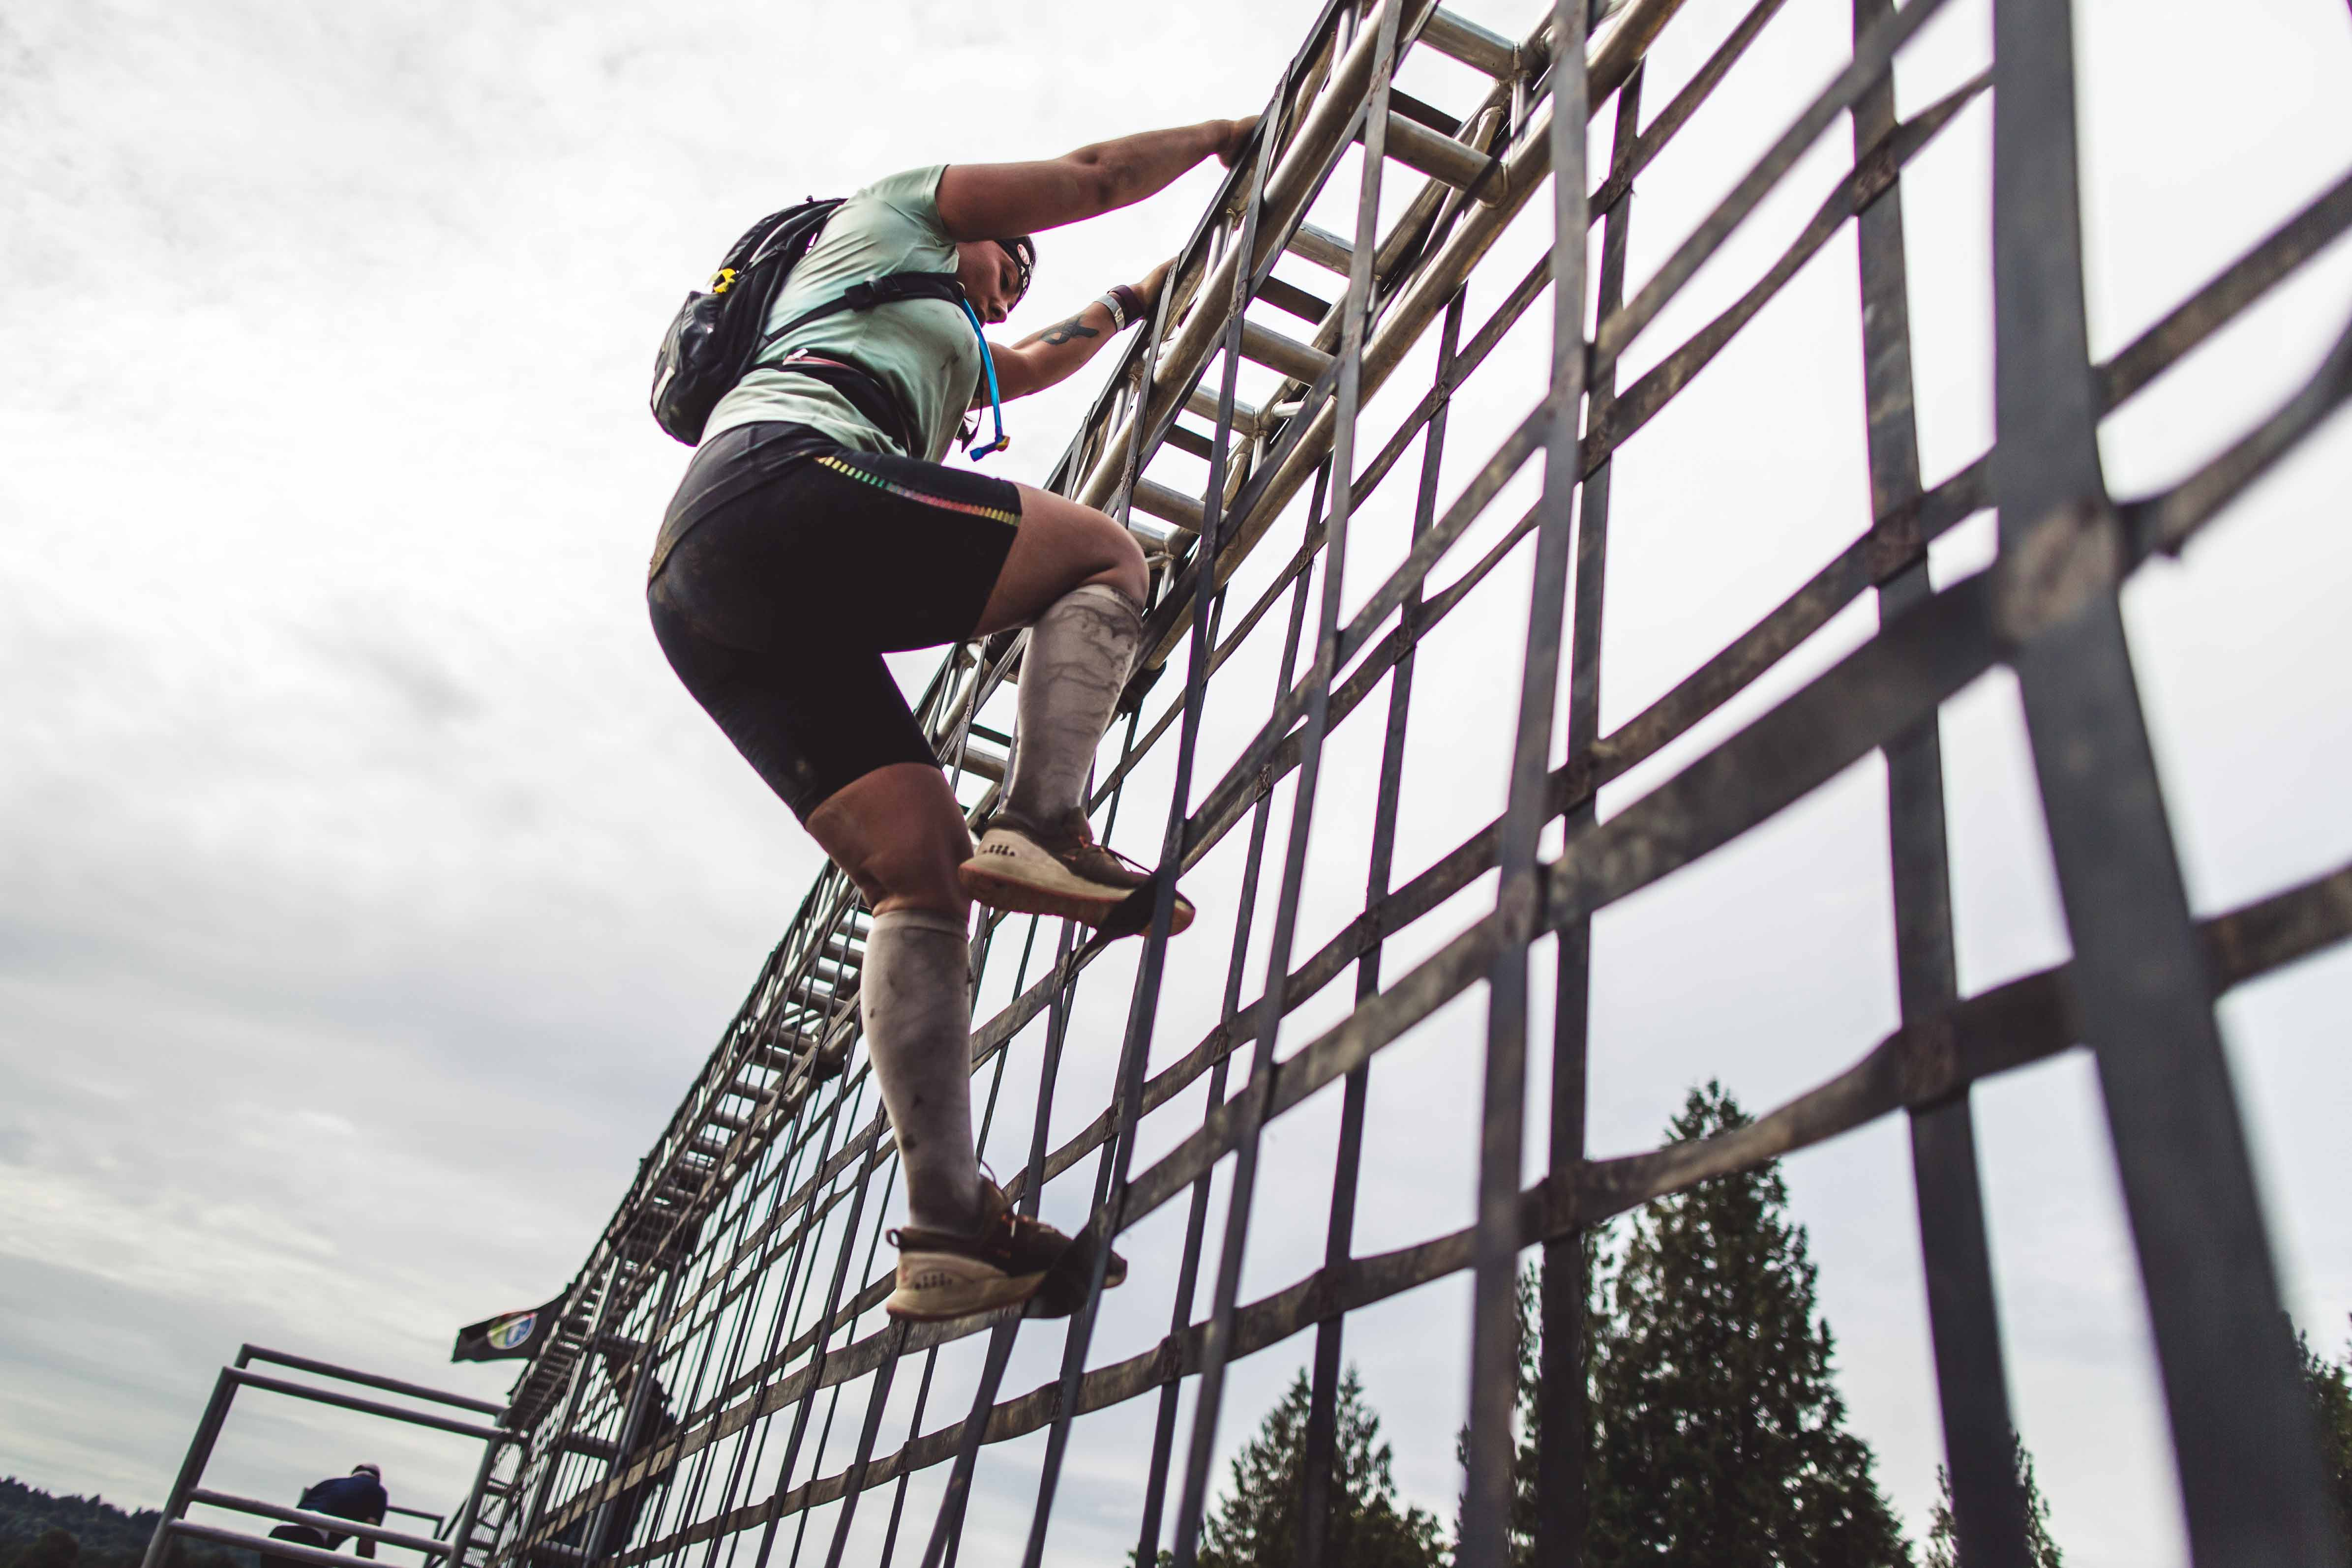 After preparing with ankle stability exercises, a Spartan racer completes an obstacle.